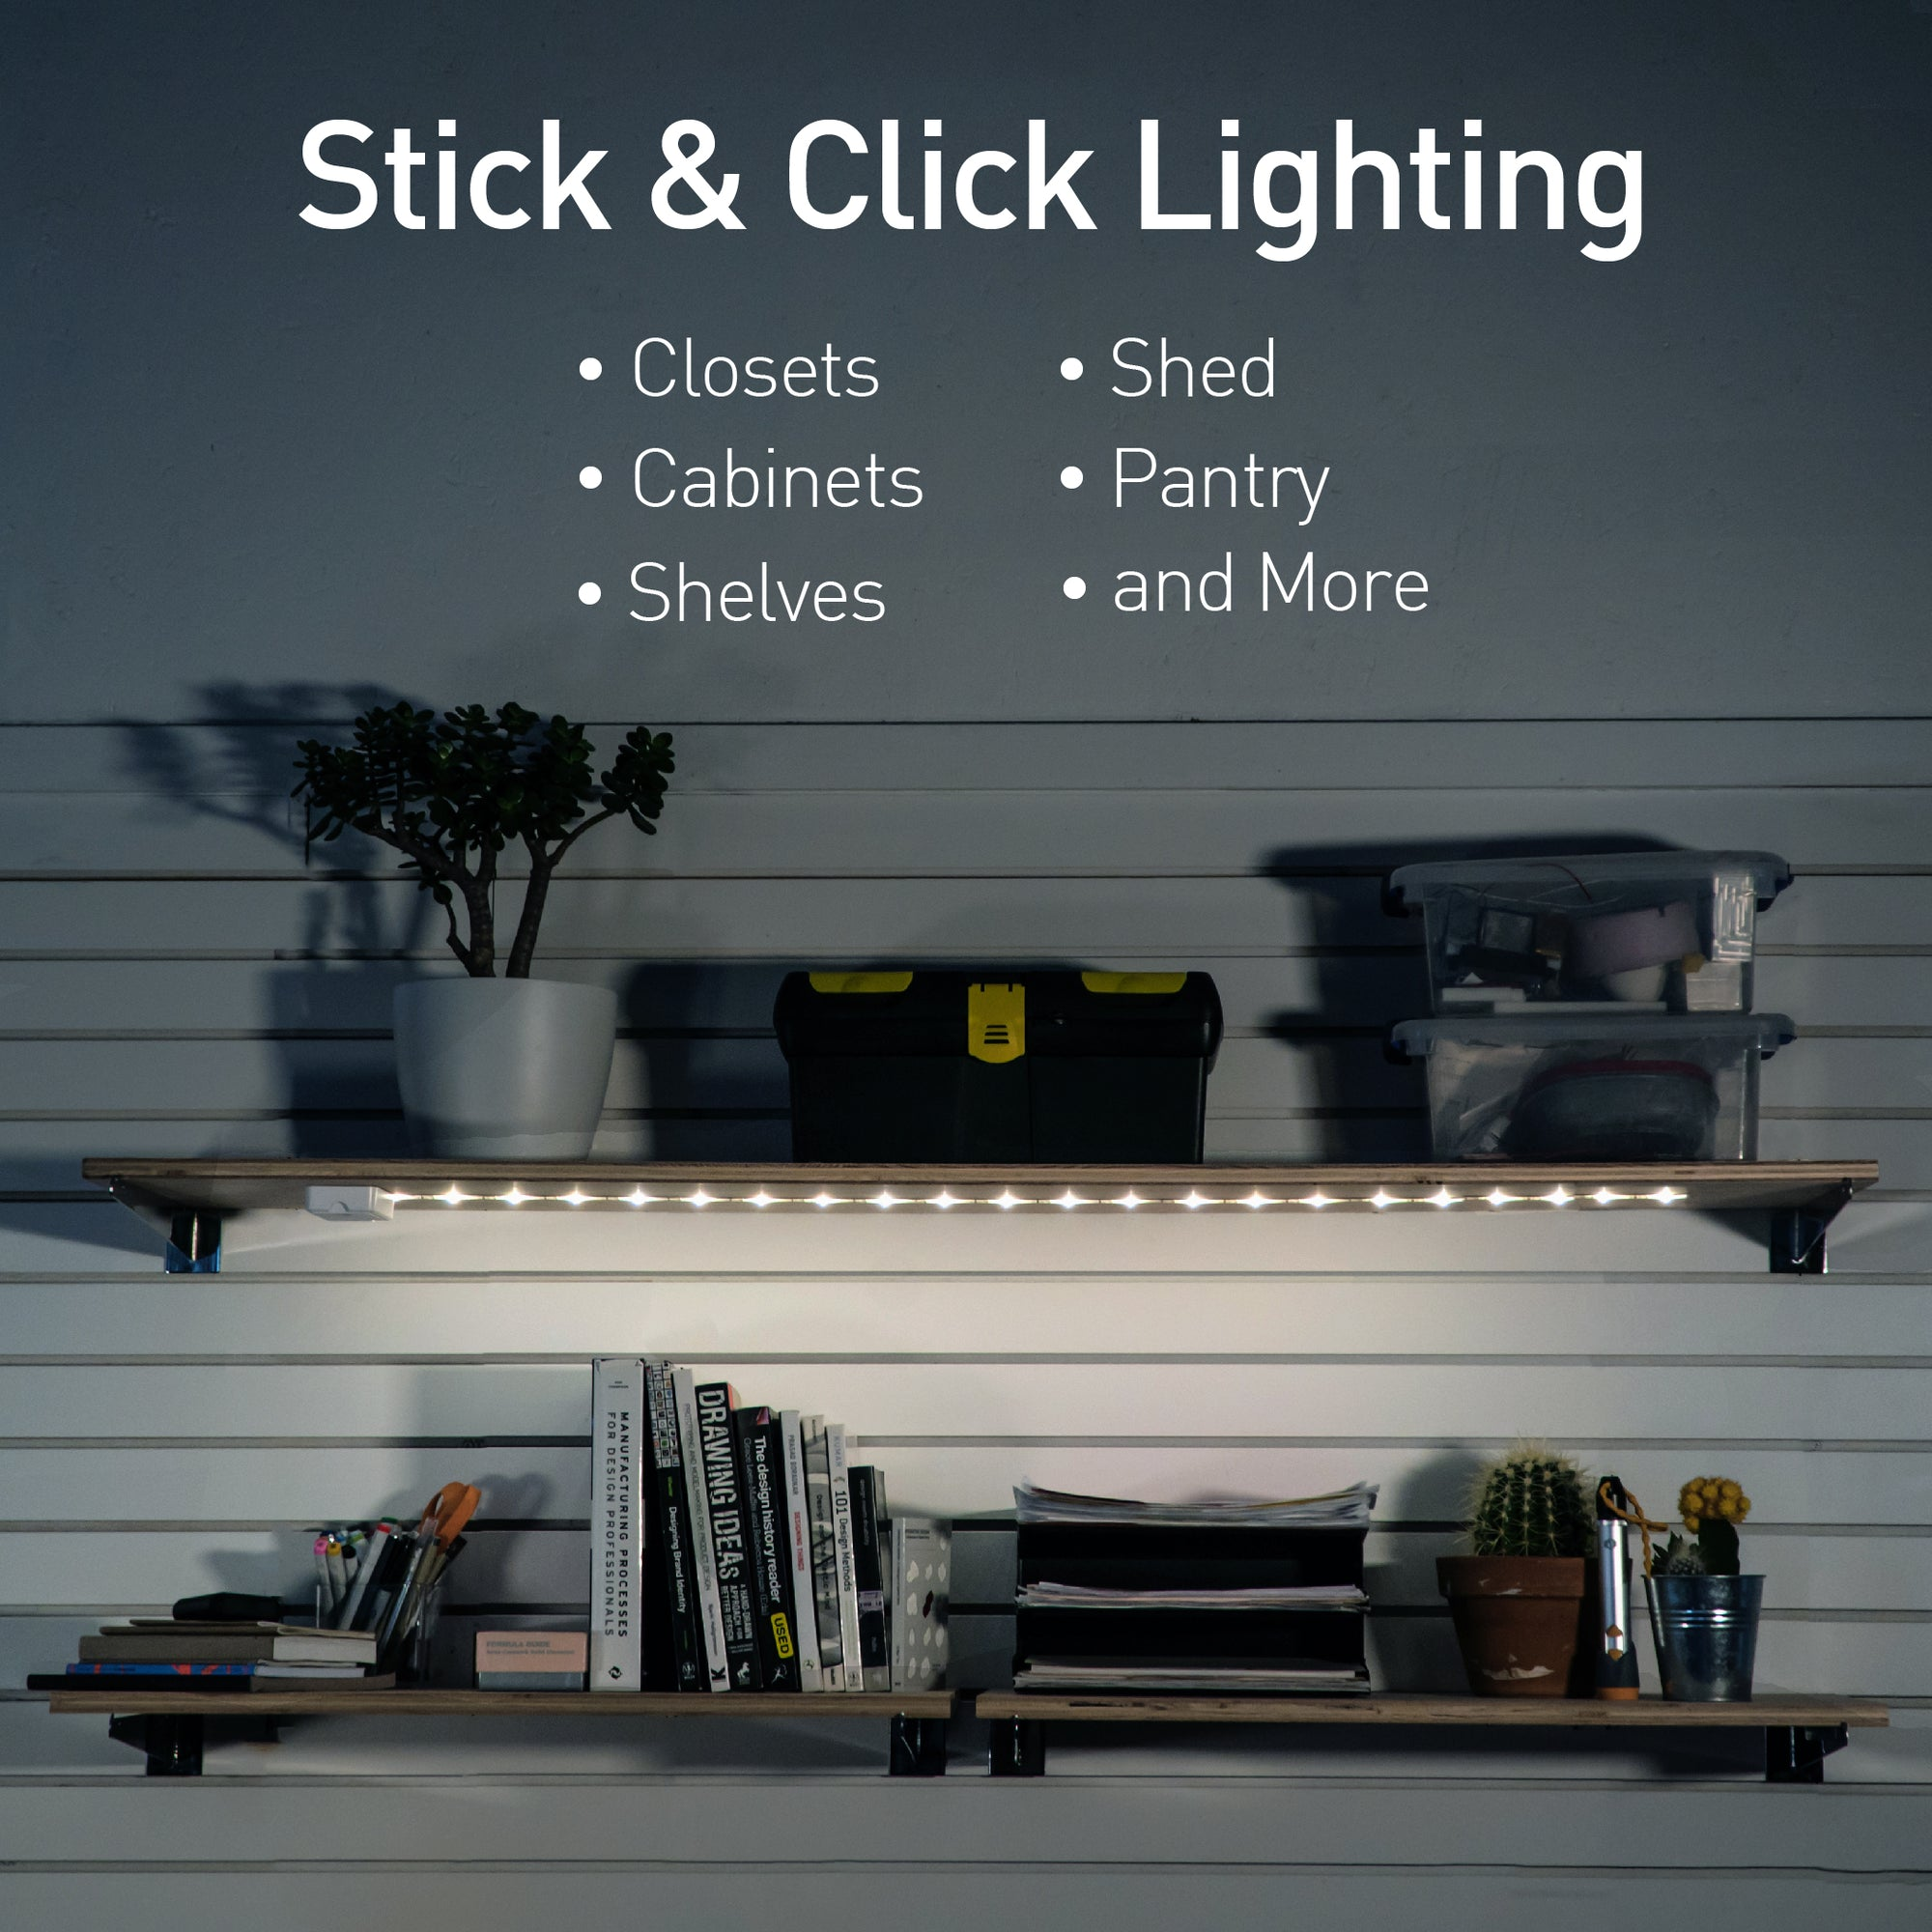 2 x STICK N CLICK LED SELF ADHESIVE LIGHT BATTERY OPERATED PUSH ON OFF LIGHTS